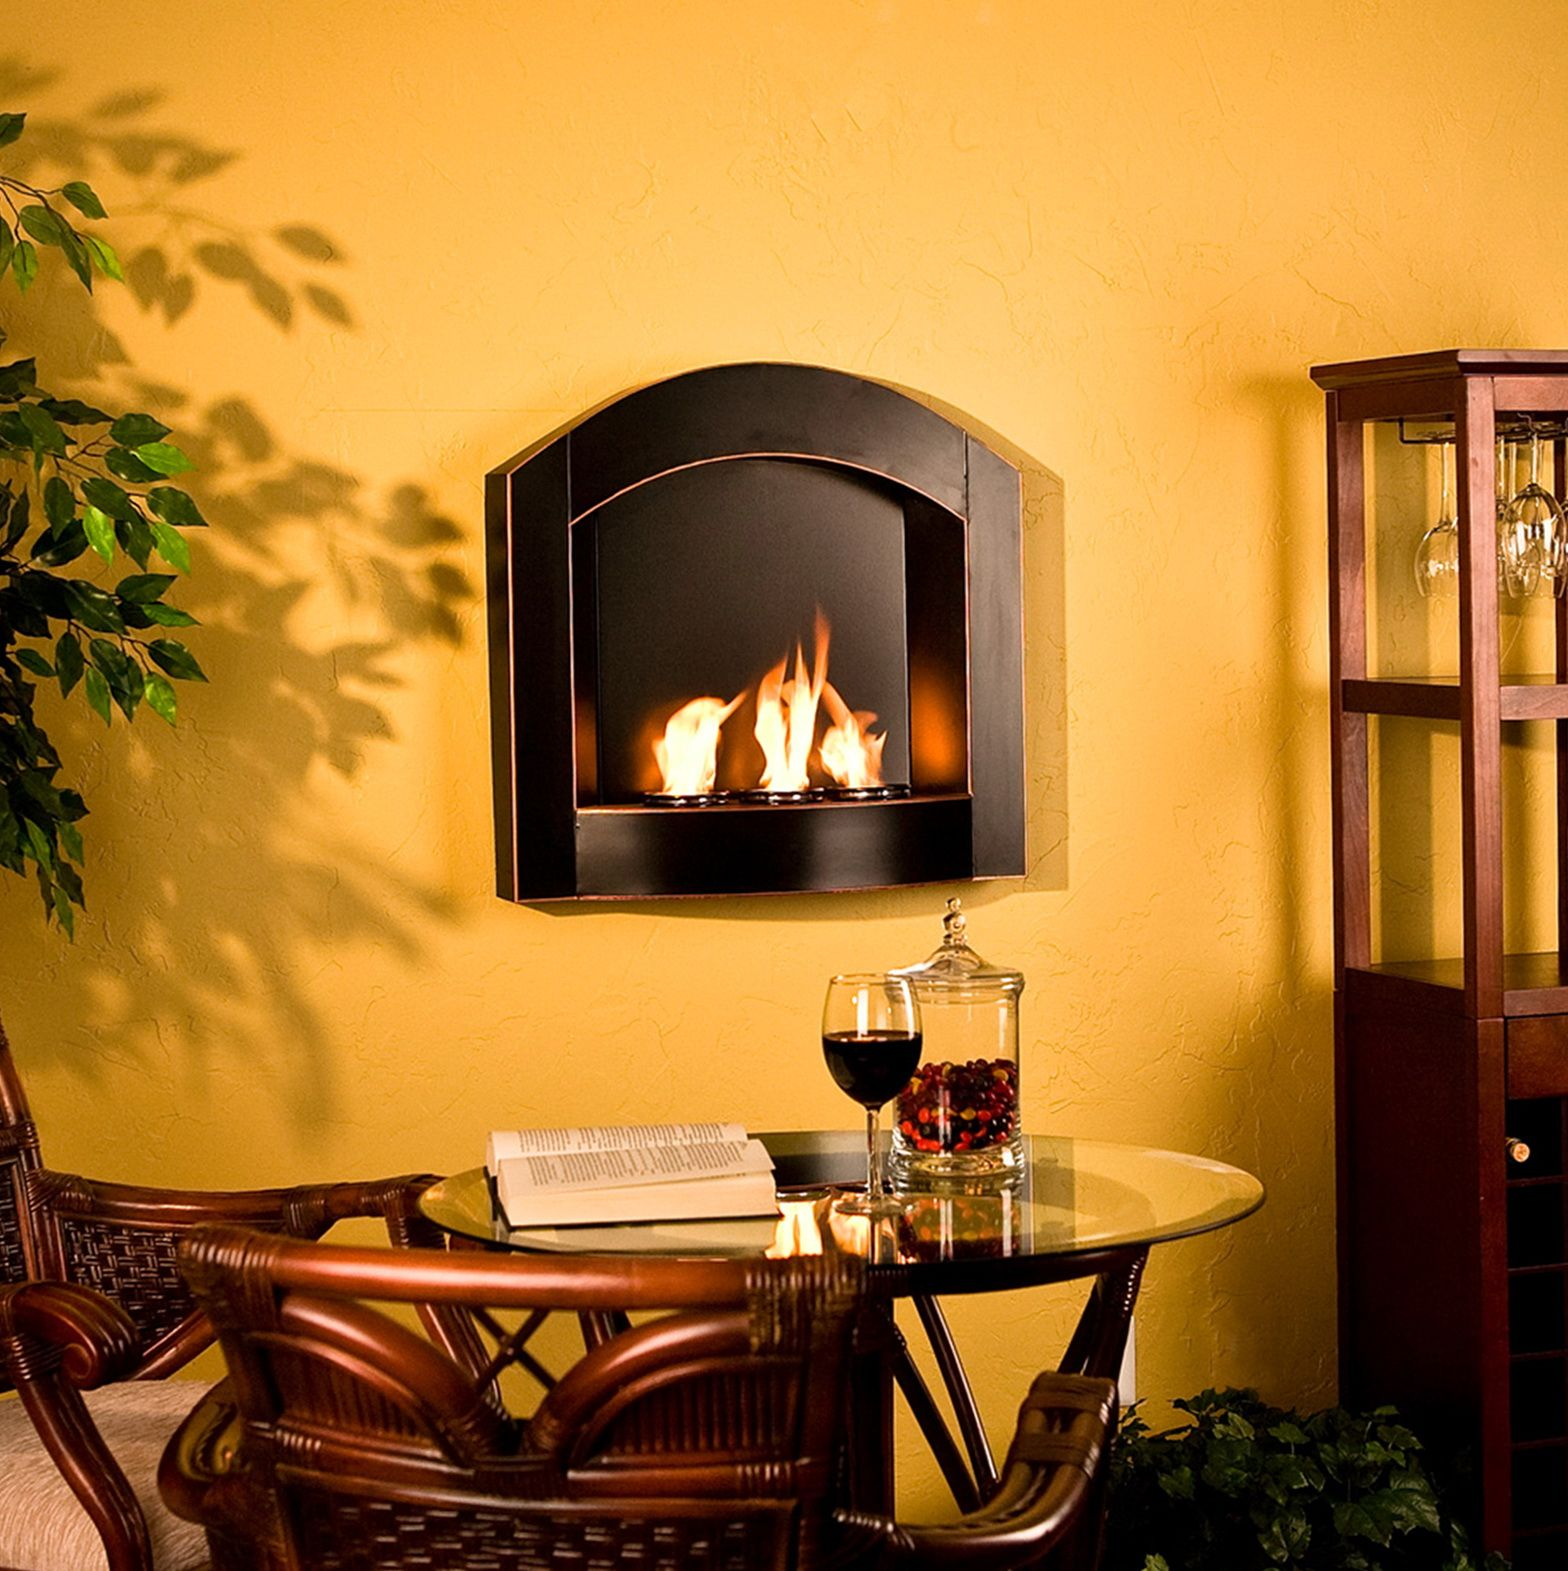 Small Wall Mounted Gas Fireplaces | Fireplace | Pinterest ...